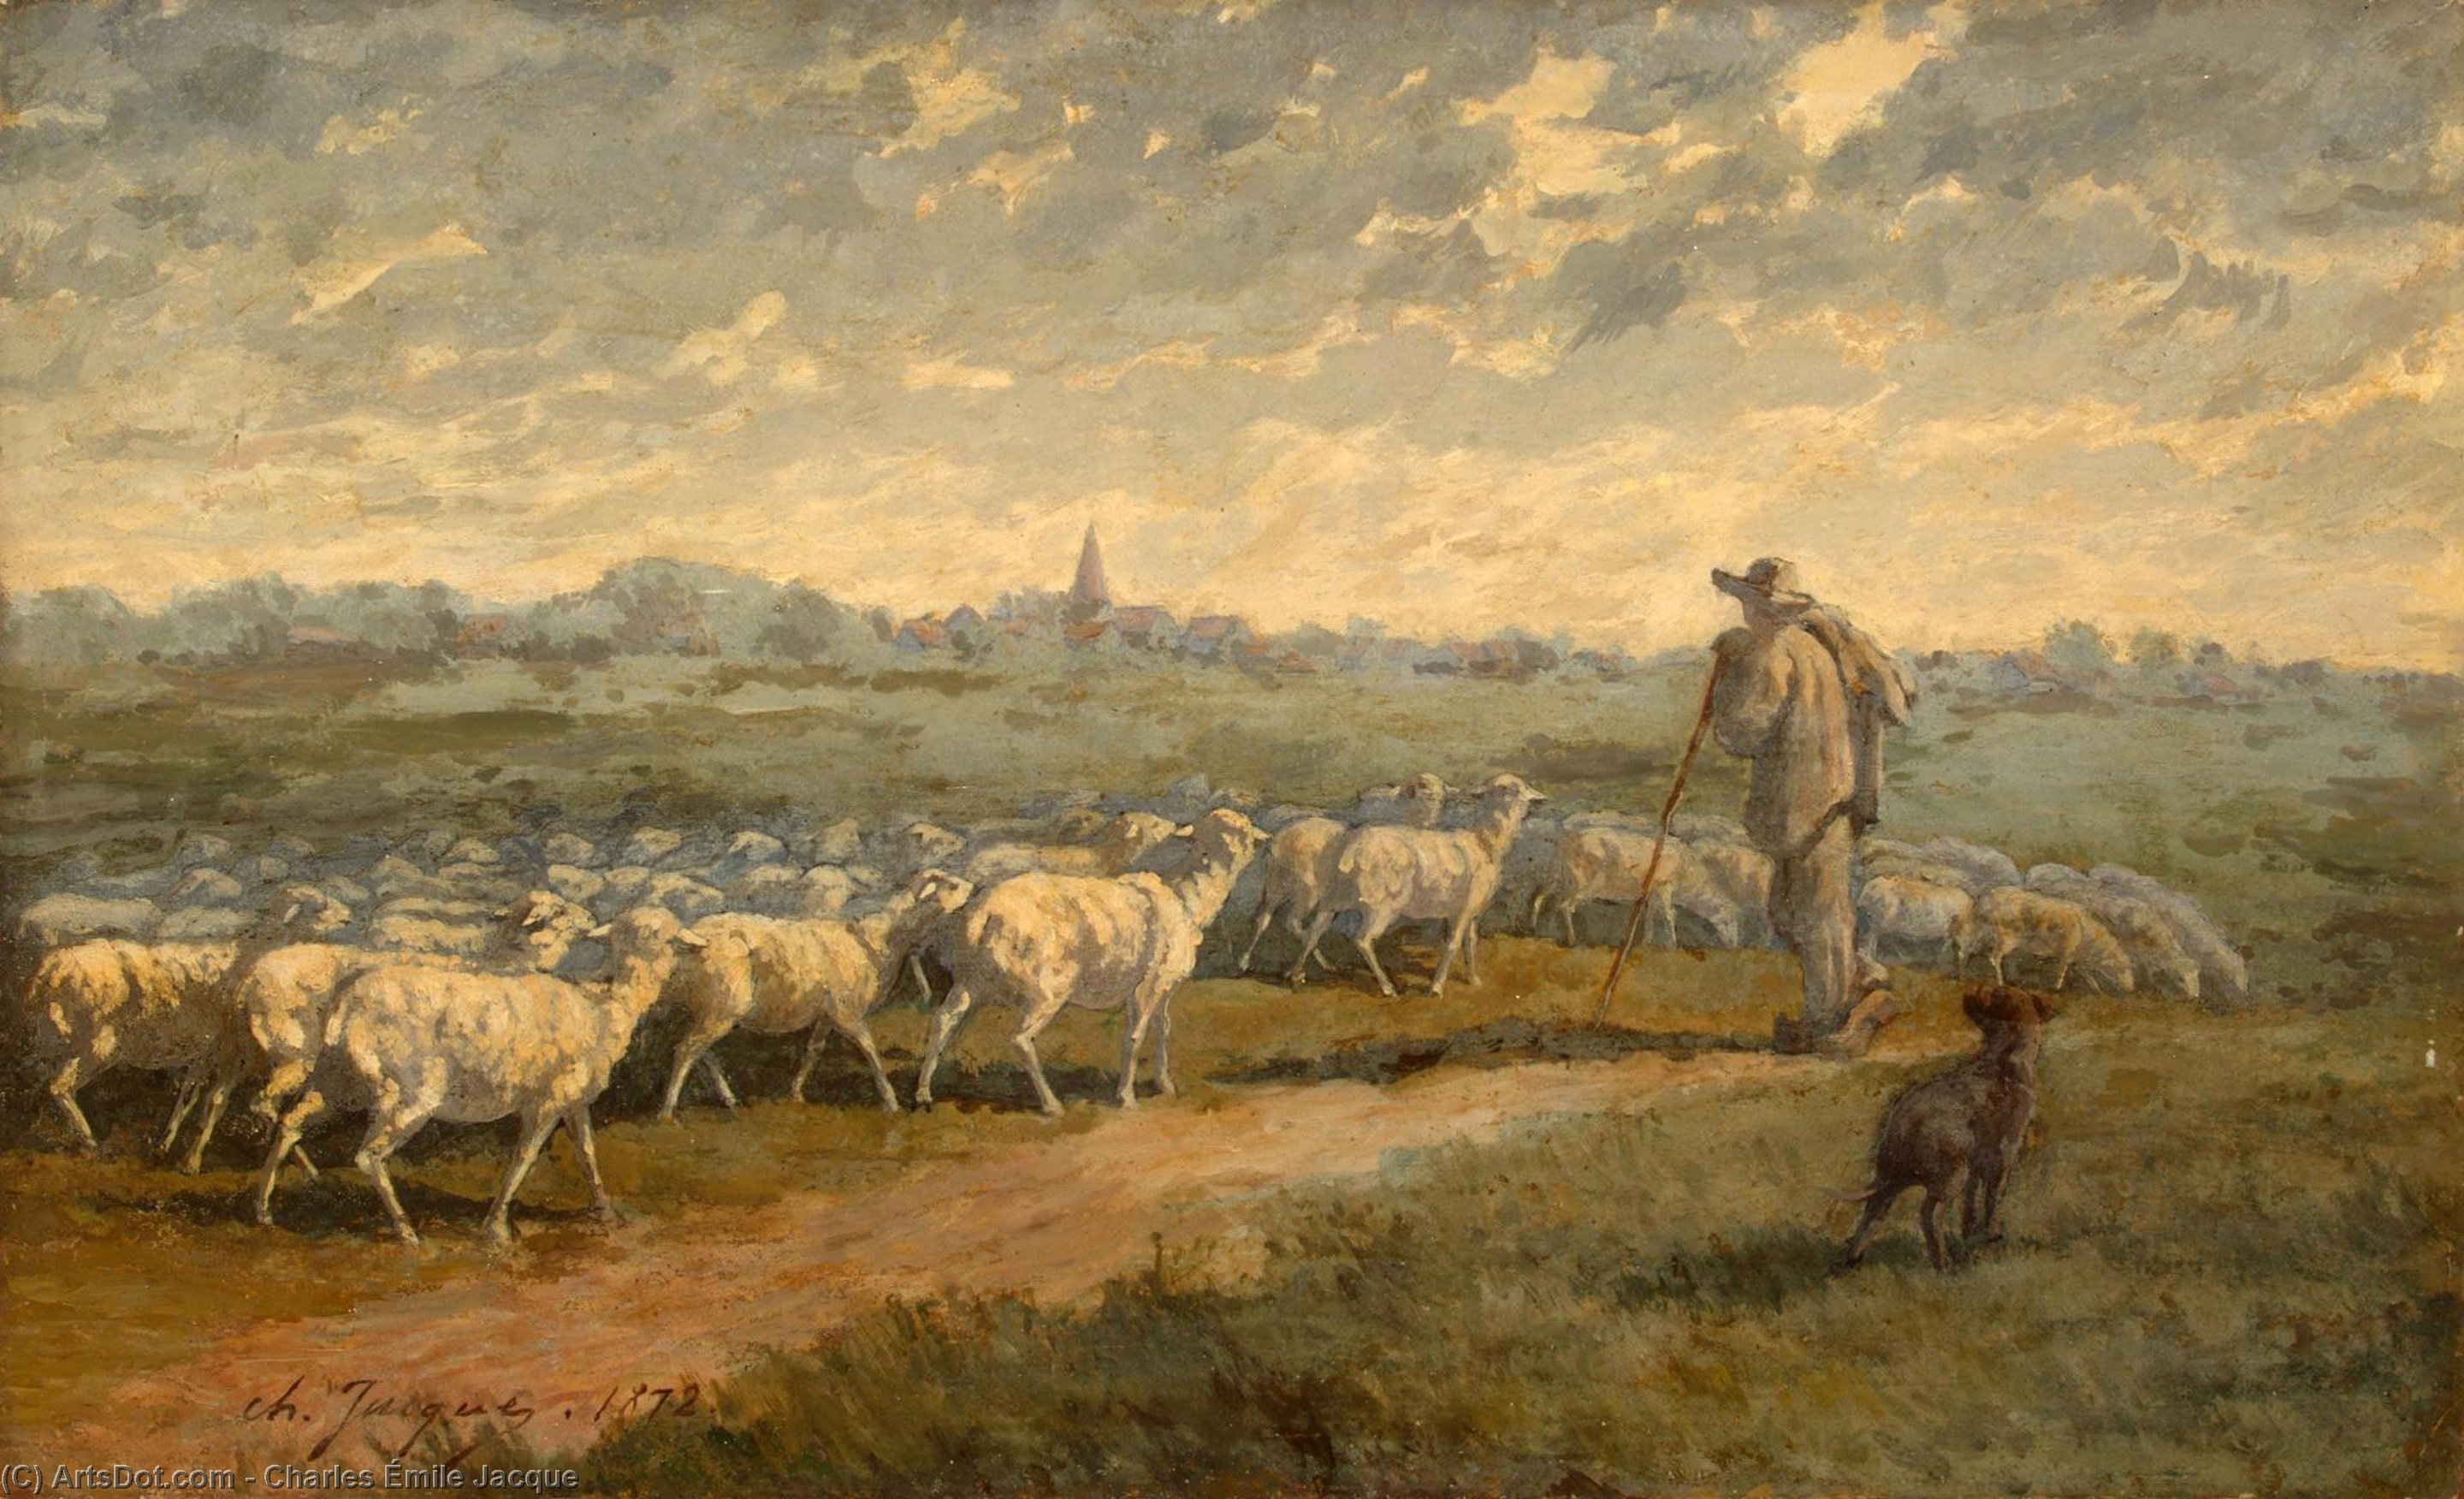 Landscape with a Herd, Oil by Charles Émile Jacque (1813-1894, France)